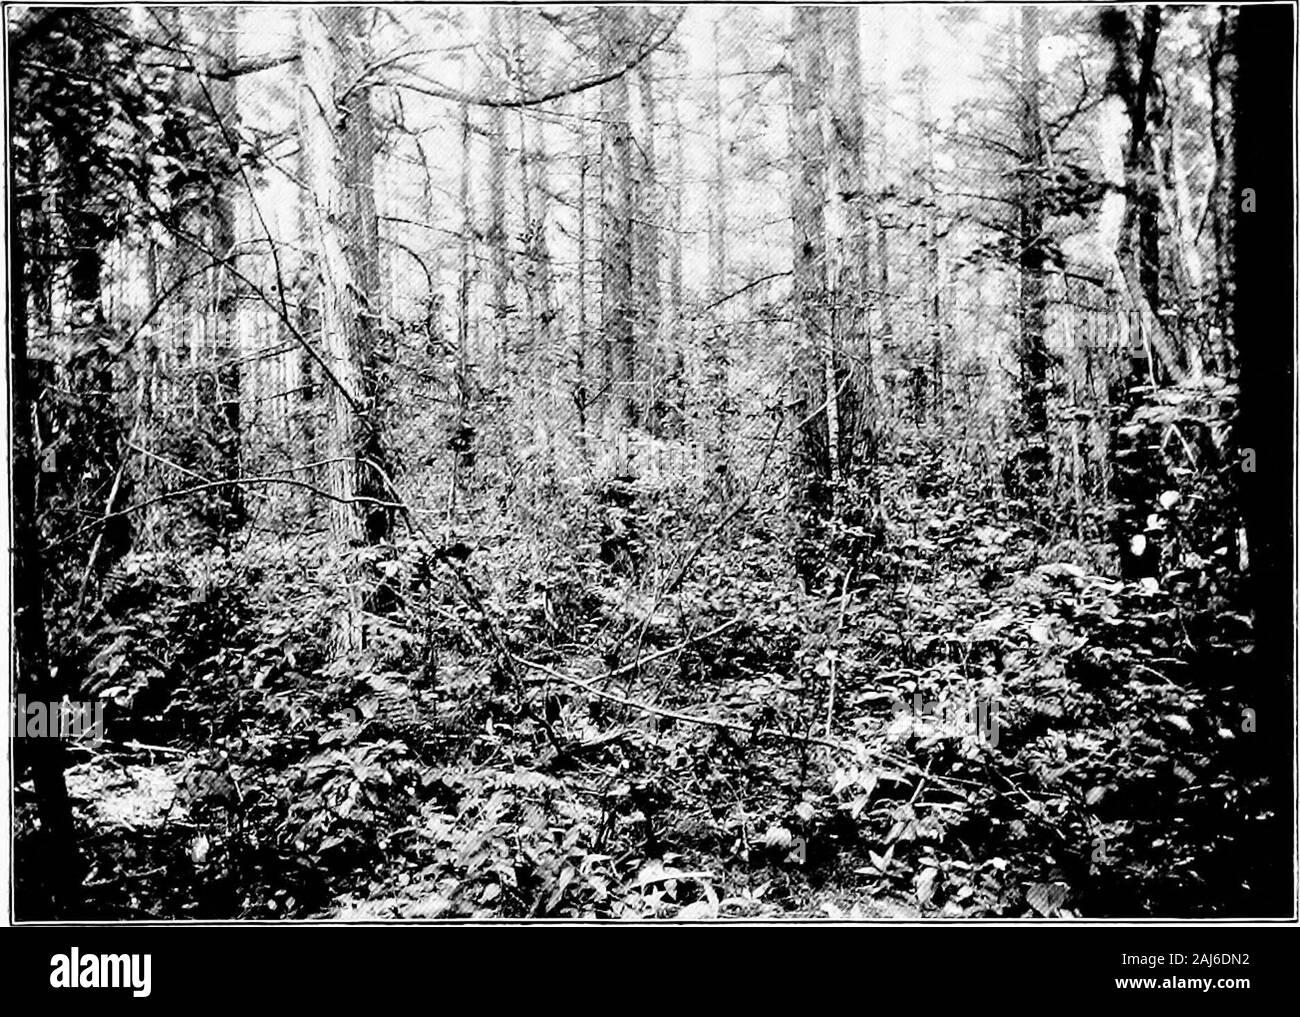 The forestal conditions and silvicultural prospects of the coastal plain of New Jersey, with remarks in reference to other regions and kindred subjects . keep it covered with water throughout the winter and for a short time at other seasons of the year,to protect it from frost, to drown out undesirable weeds and insect pests or prevent a fungous disease called scald,* A bog may be flooded at any time without Injury to the vines, except when in.blossom Inclearing a bog the slumps are usually removed, but not always. The whole is turfed with a cranberry orboghoe, which has a wider blade than the Stock Photo